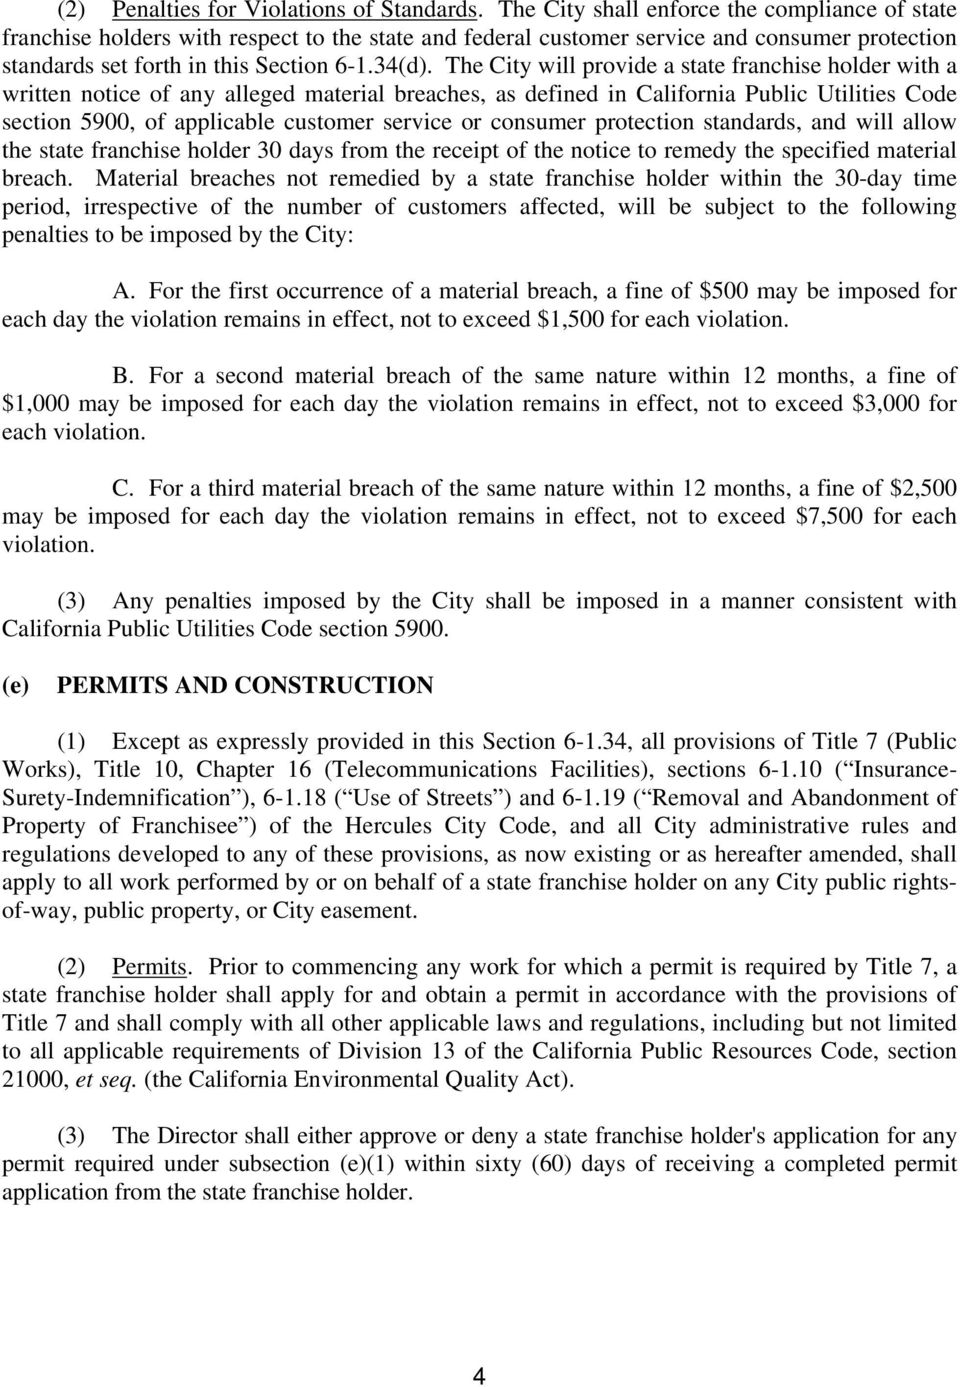 The City will provide a state franchise holder with a written notice of any alleged material breaches, as defined in California Public Utilities Code section 5900, of applicable customer service or